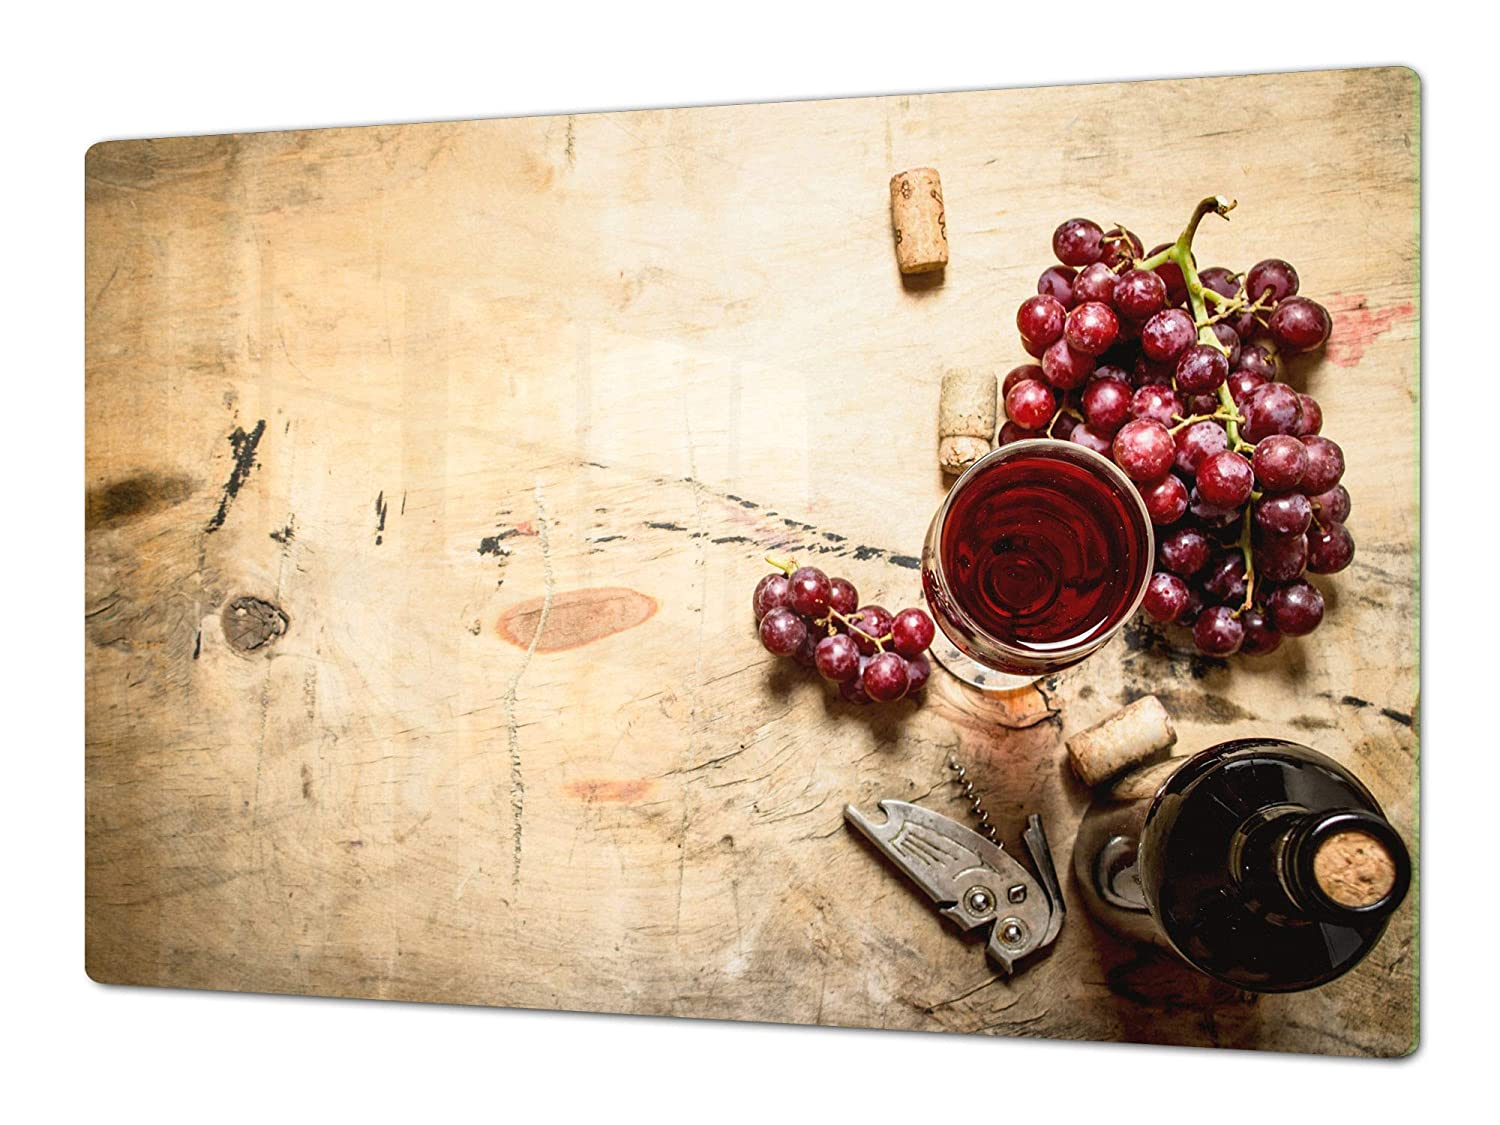 Red wine 4 80x52 Big Kitchen Board & Induction Cooktop Cover – Glass Pastry Board – Heat and Bacteria Resistant;Single  80 x 52 cm (31,5  x 20,47 ); Double  40 x 52 cm (15,75  x 20,47 ); Wine Series DD04